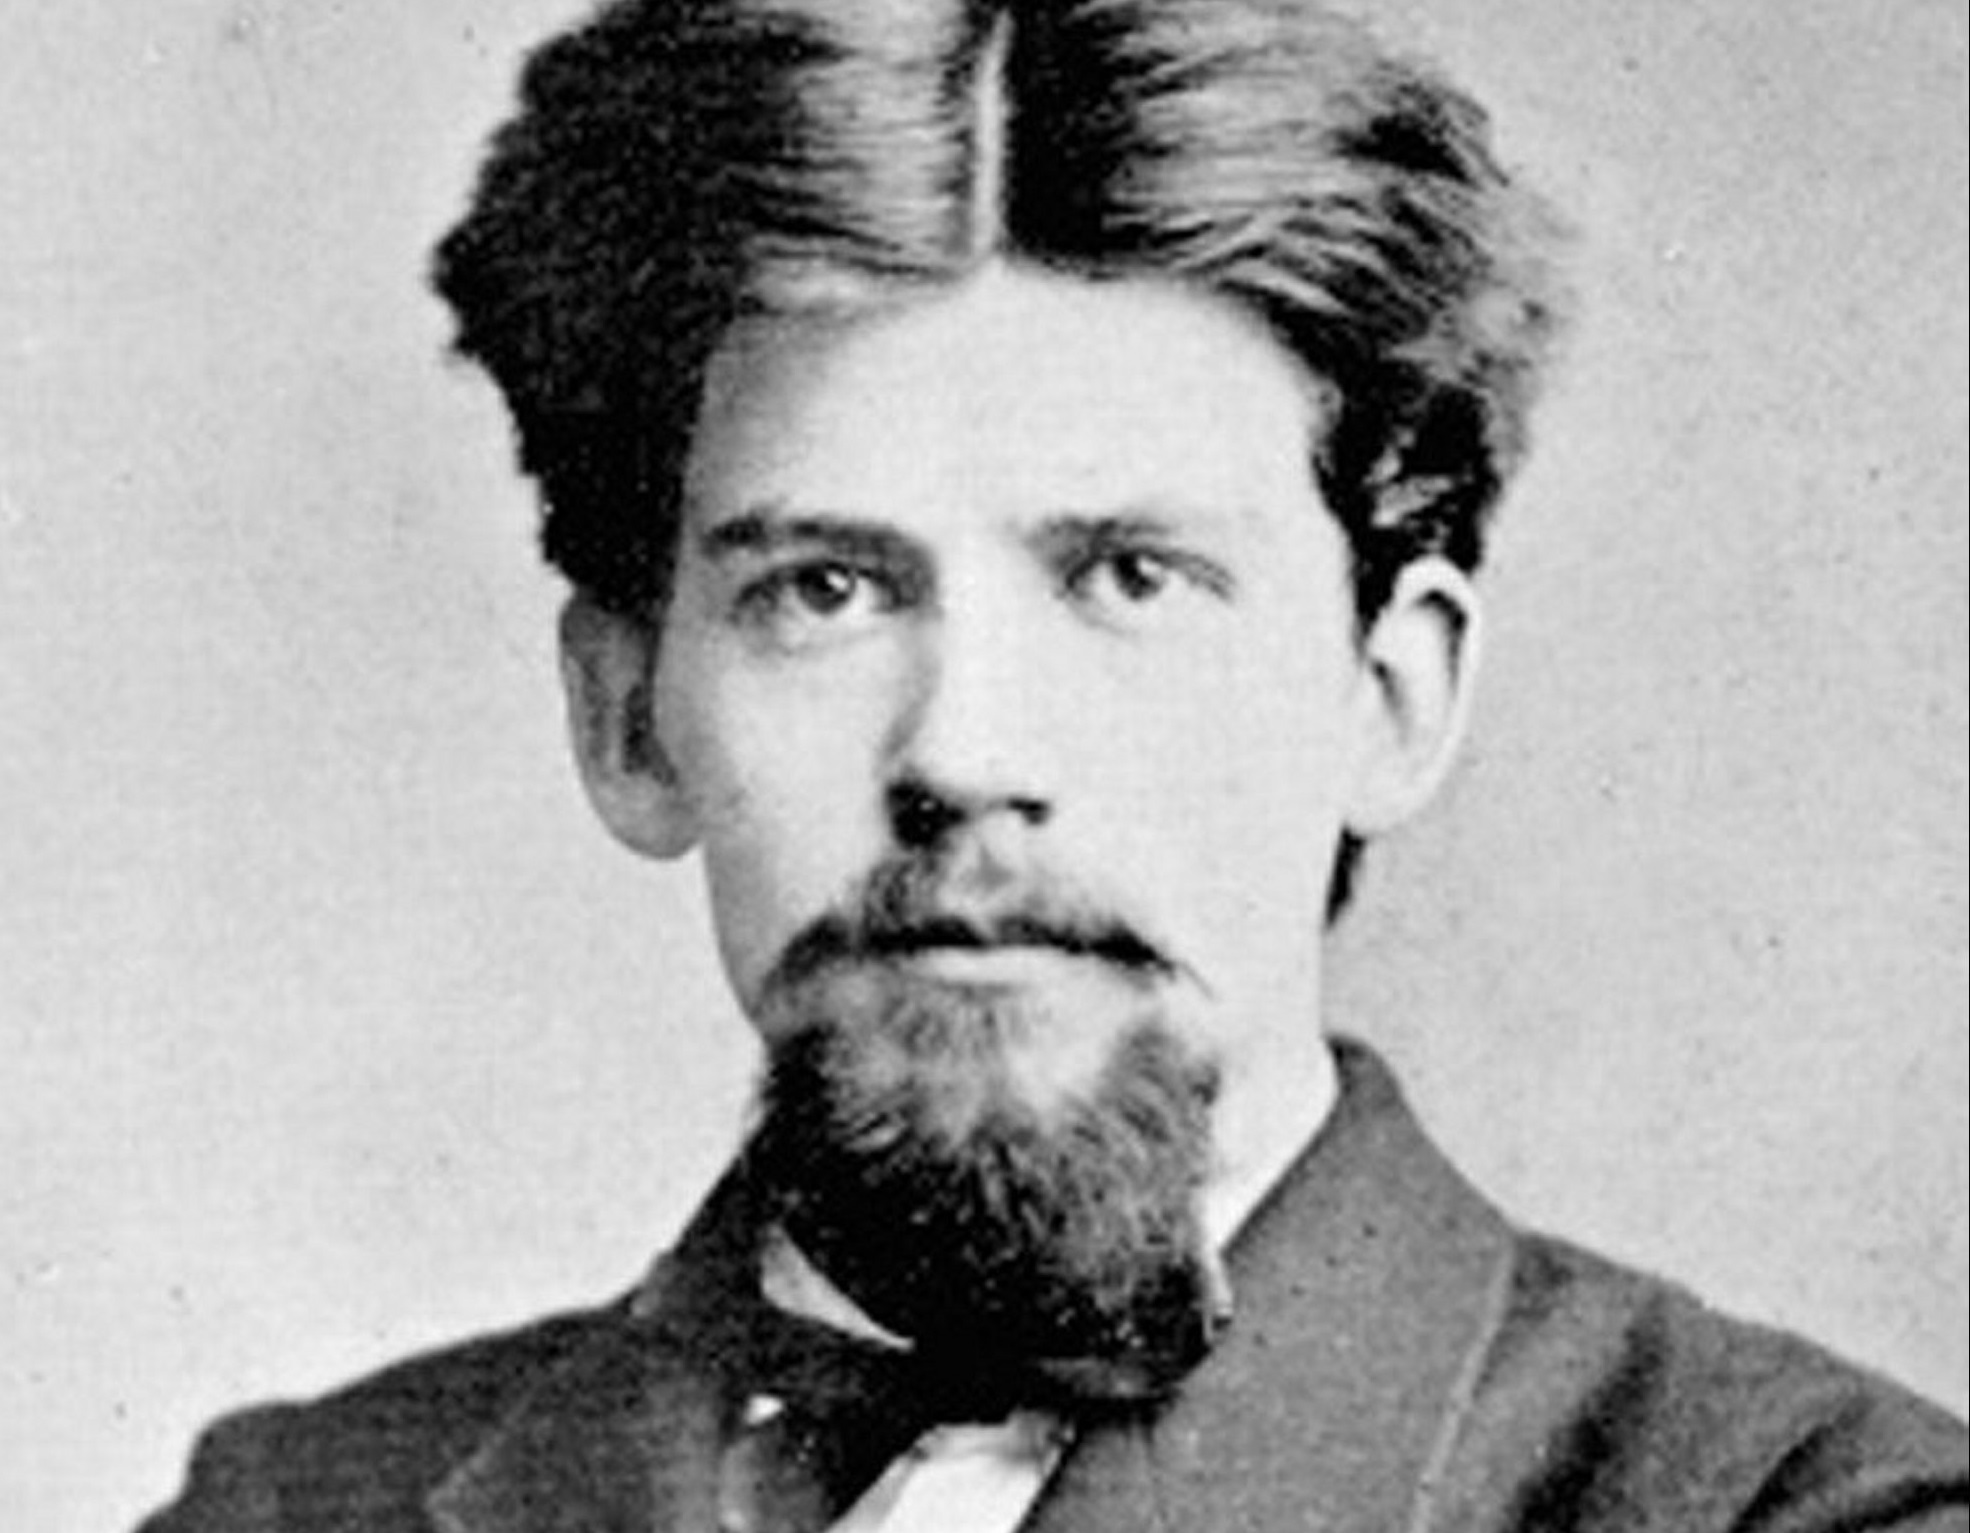 Patrick Geddes had good intentions when he planned Hebrew University